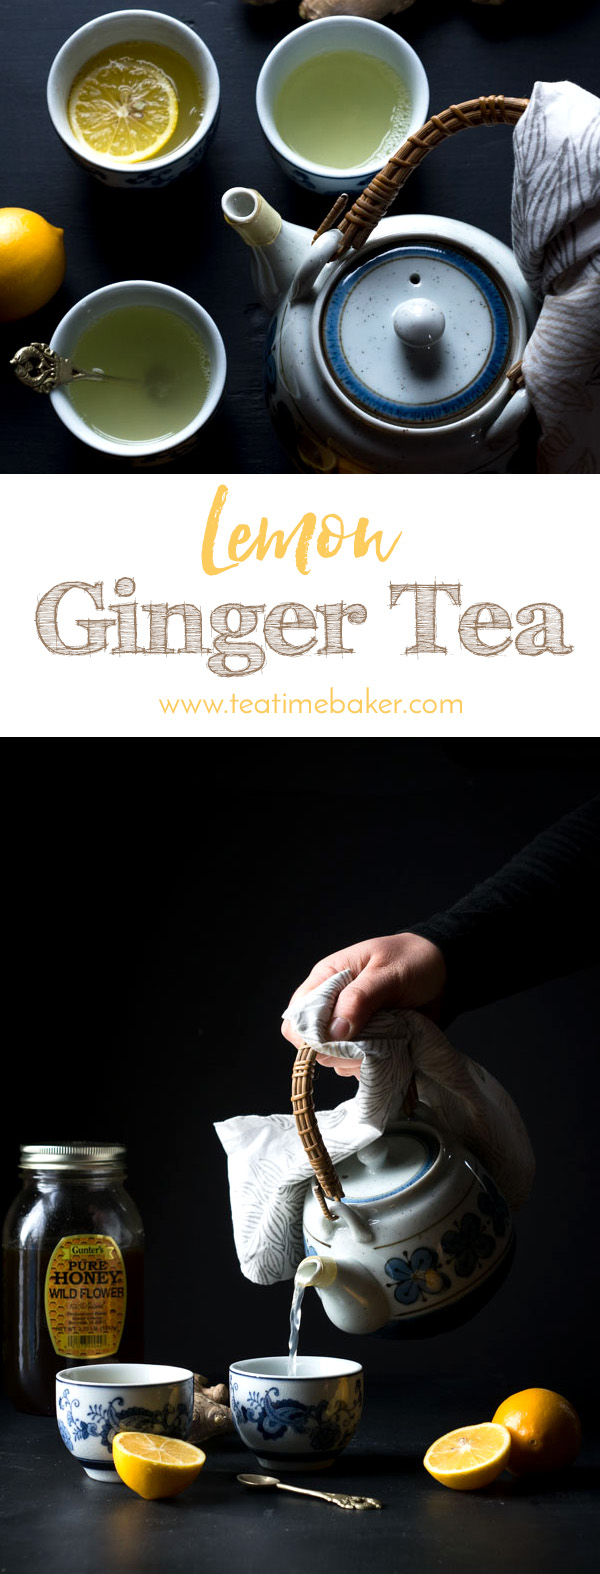 Chase the winter blues with this Lemon Ginger Tea Recipe. Sweet, spicy and tart it's just what the doctor ordered for a winter evening snuggled in front of the fireplace. | Healthy Lemon Ginger Tea Recipe | The Teatime Baker | Fresh Tea | #lemongingertea